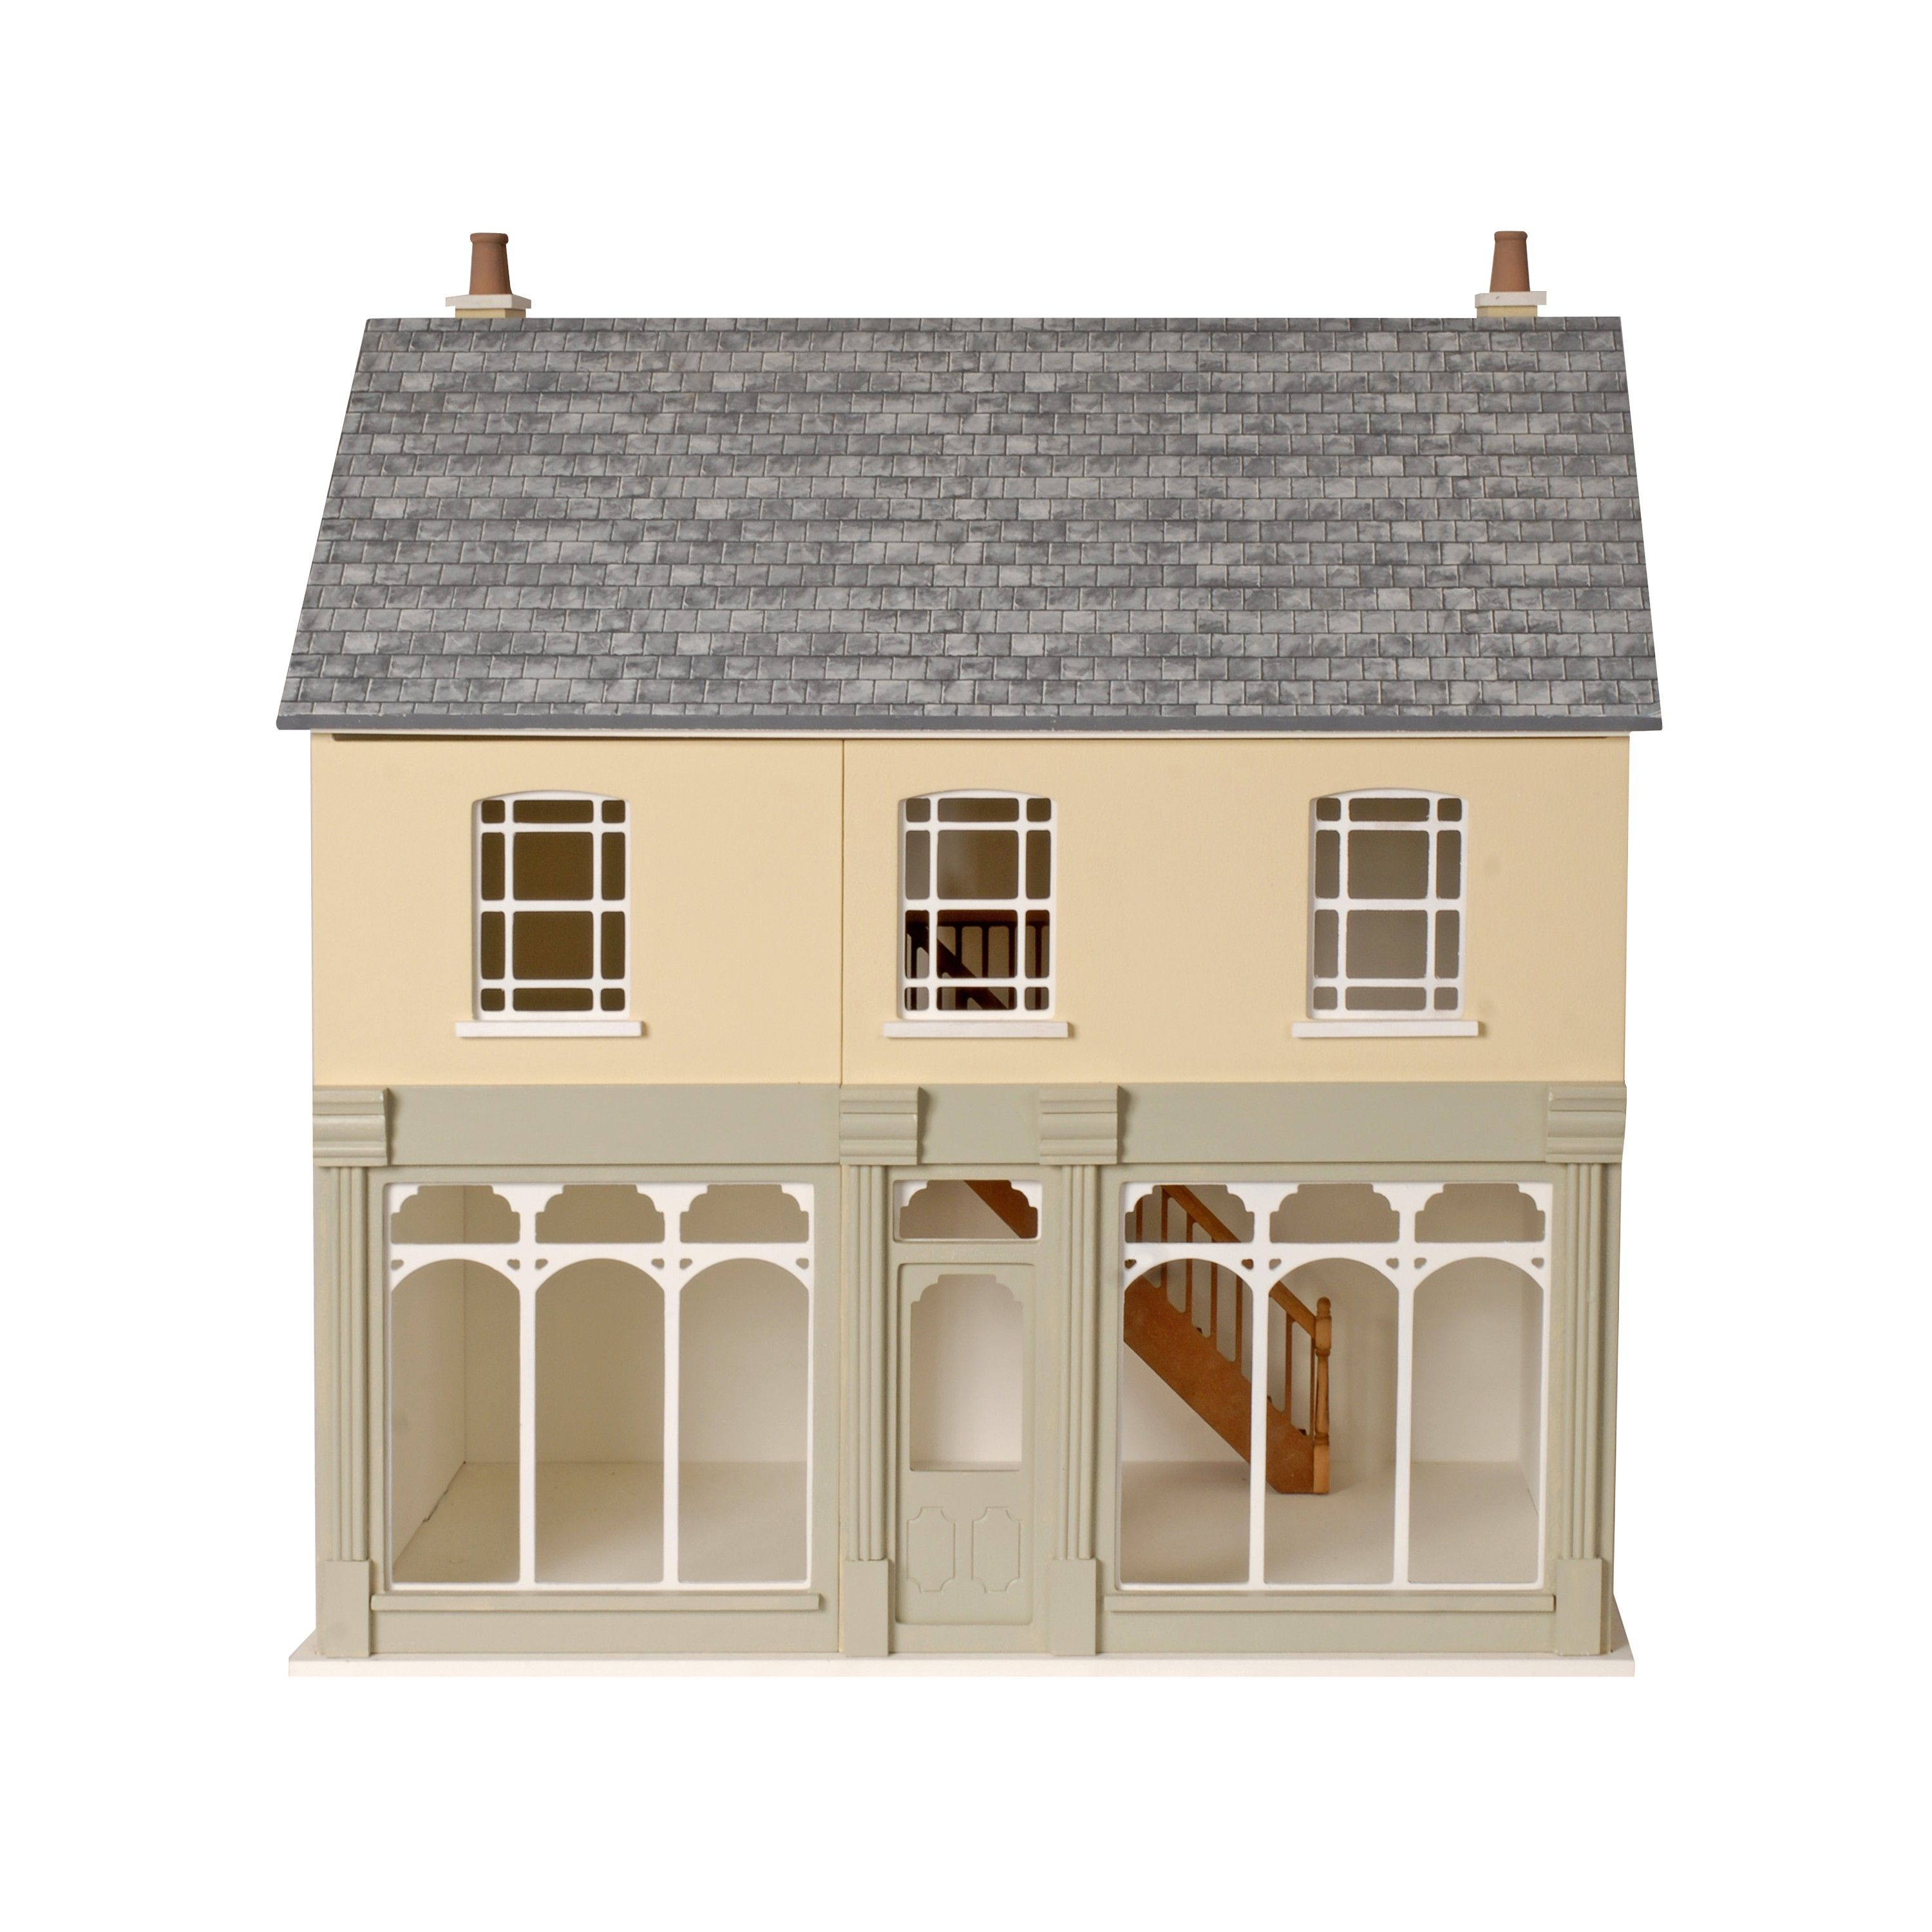 Melody Jane Dolls House 1:12 double fronted Boutique Ready Made Unfinished Wood